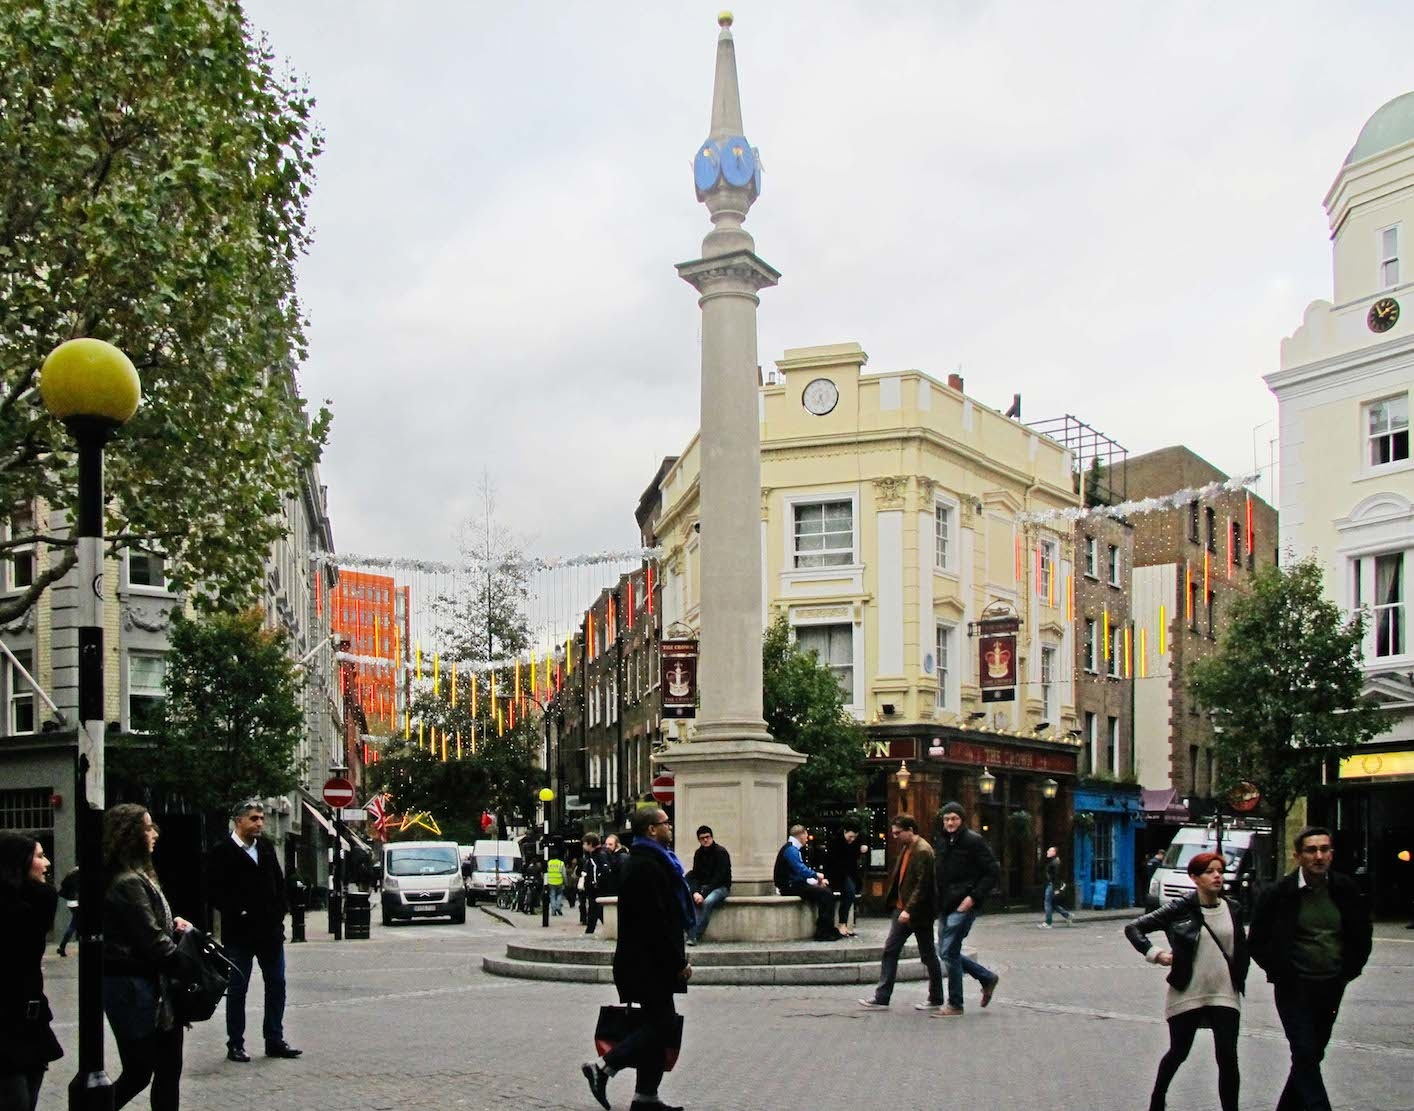 Seven Dials, London, England. A shared space.